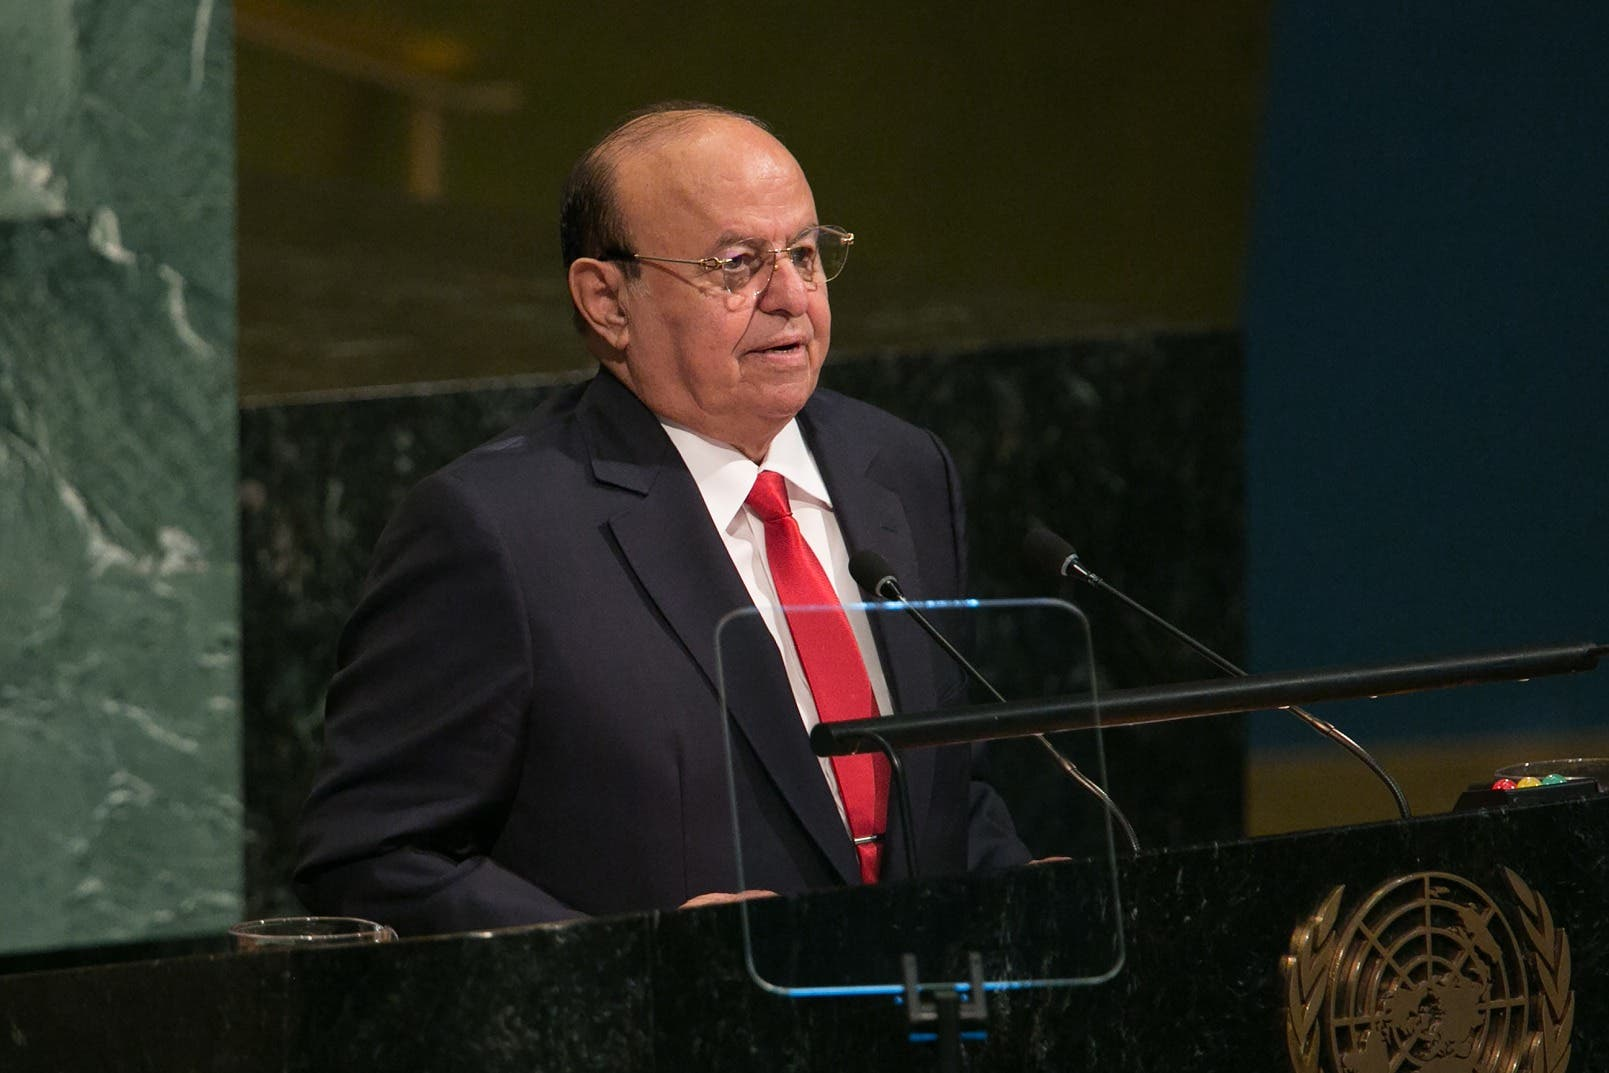 NEW YORK, NY - SEPTEMBER 21: Yemen's President Abdrabuh Mansour Hadi Mansour addresses the U.N. General Assembly at the United Nations on September 21, 2017 in New York City. Topics to be discussed at this year's gathering include Iran, North Korea and global warming. Kevin Hagen/Getty Images/AFP  Kevin Hagen / GETTY IMAGES NORTH AMERICA / AFP